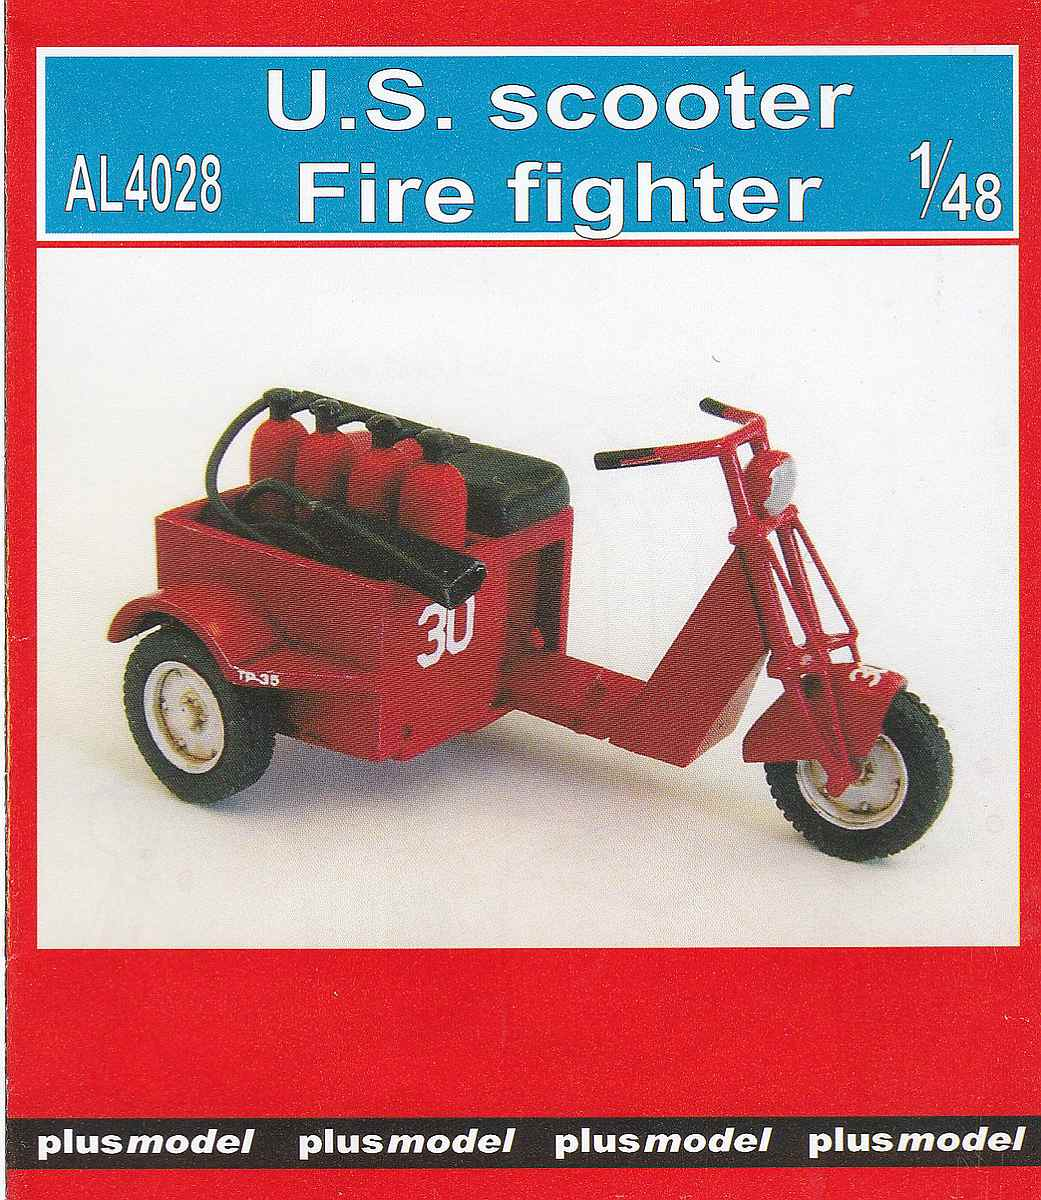 PlusModel-AL-4028-US-Scooter-Fire-Fighter-3 US Scooter Fire Fighter im Maßstab 1:48 von PlusModel AL-4028